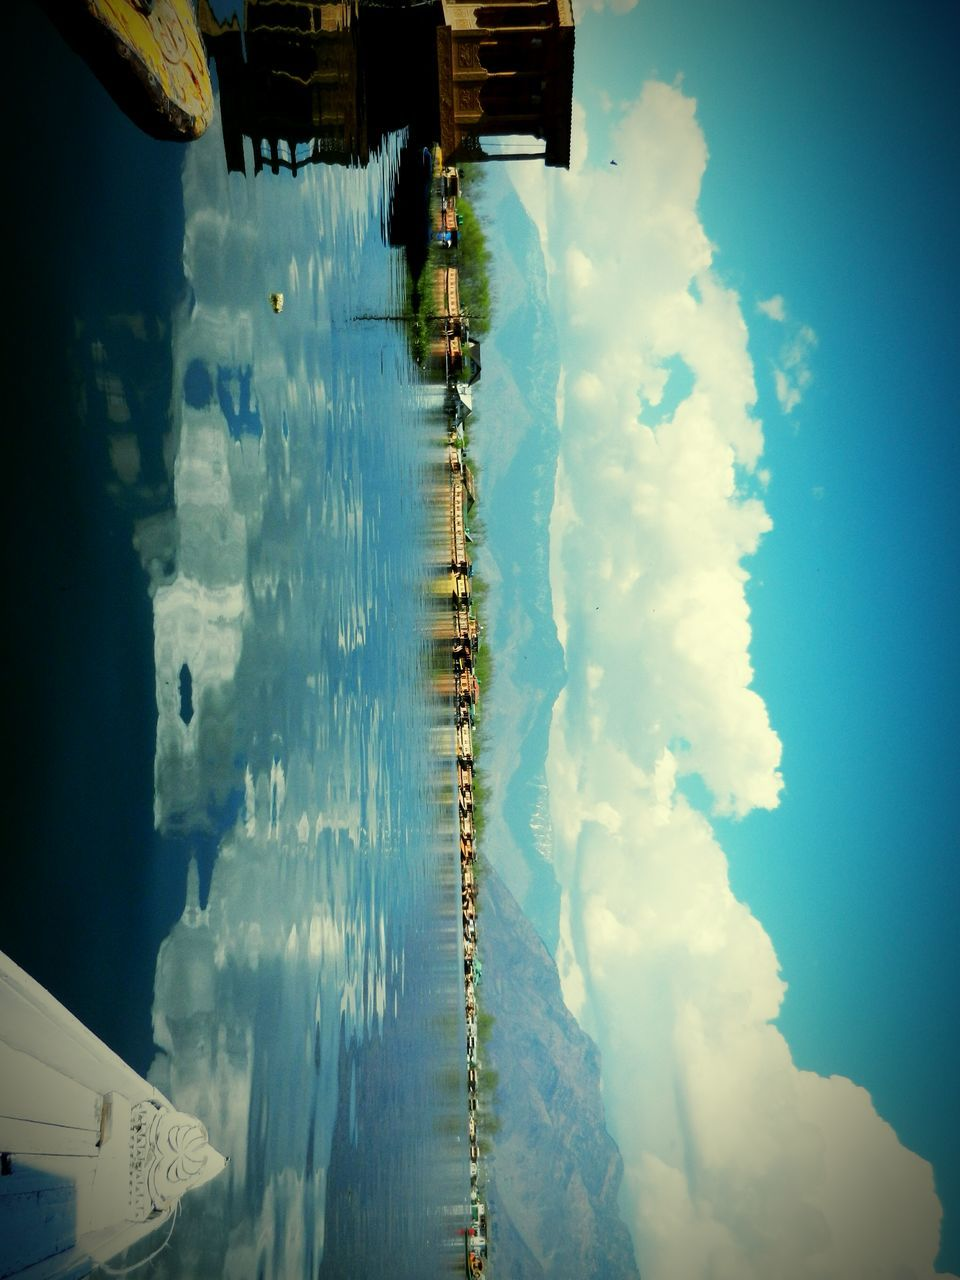 sky, cloud - sky, water, outdoors, building exterior, architecture, built structure, day, no people, nature, beauty in nature